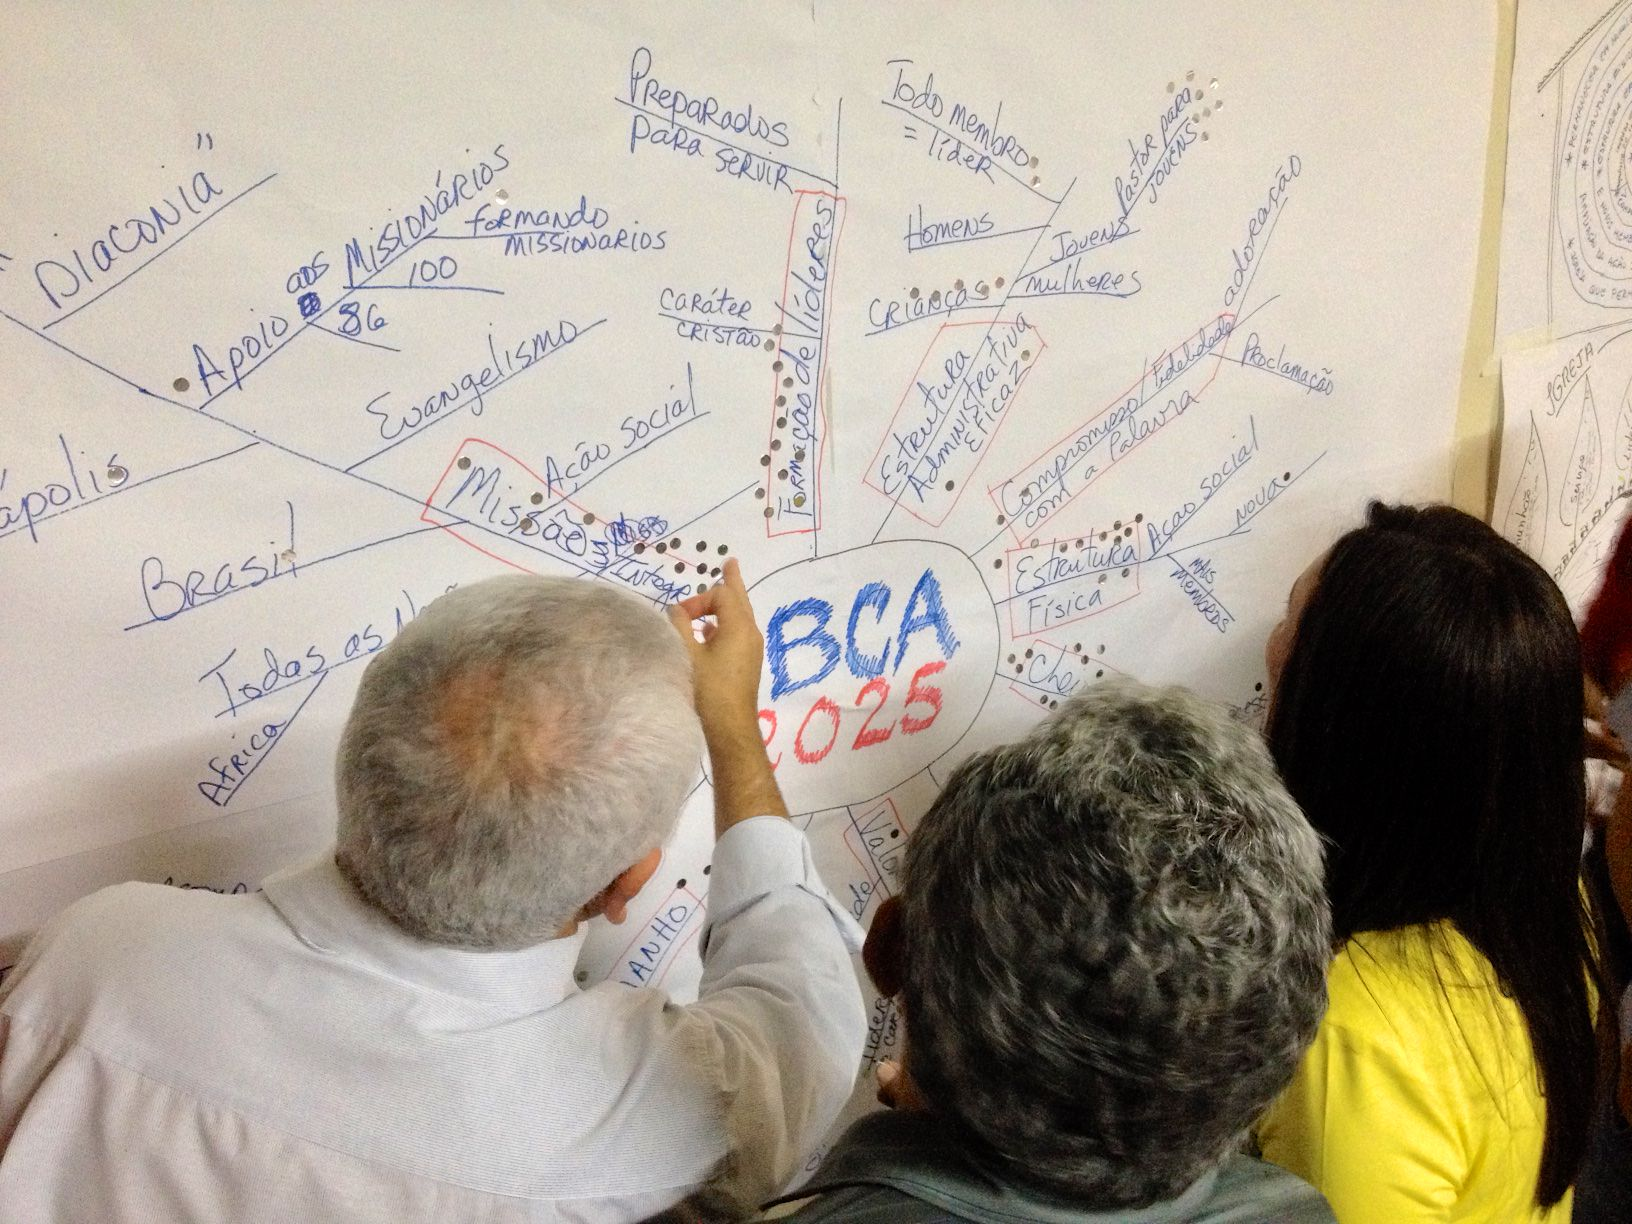 Leaders mapping their dreams for 2025